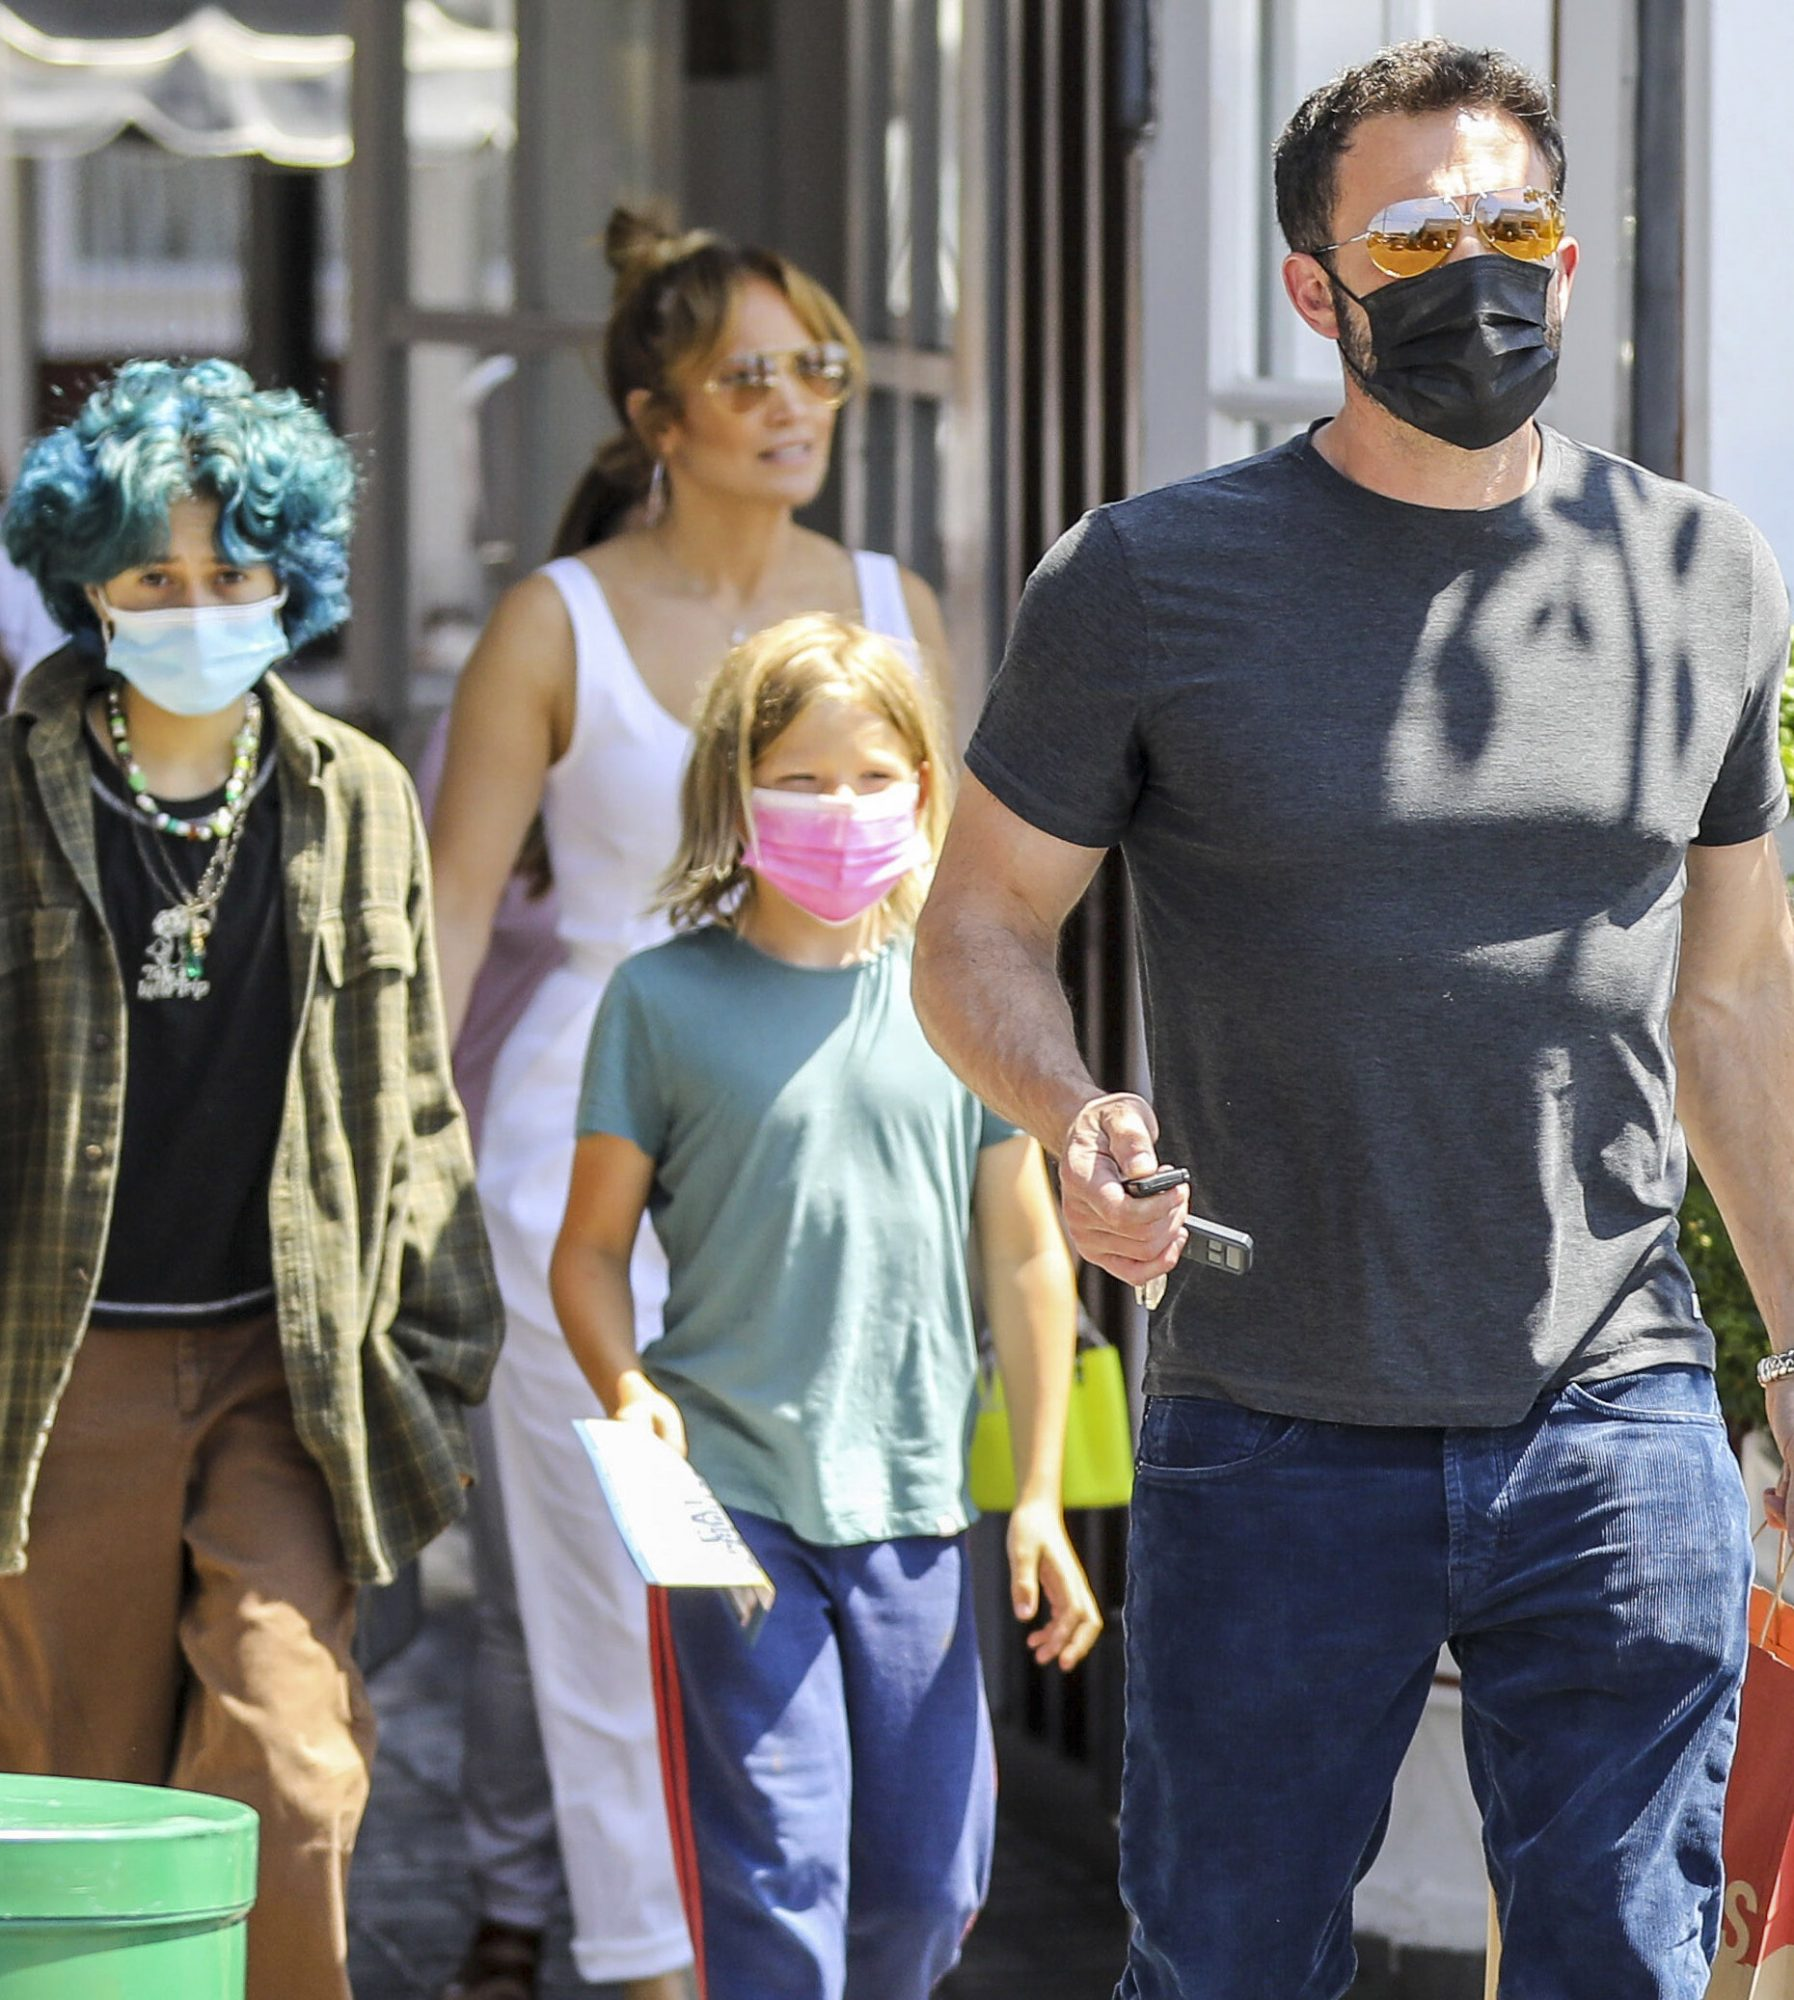 Jennifer Lopez and Ben Affleck Having Lunch With Their Kids